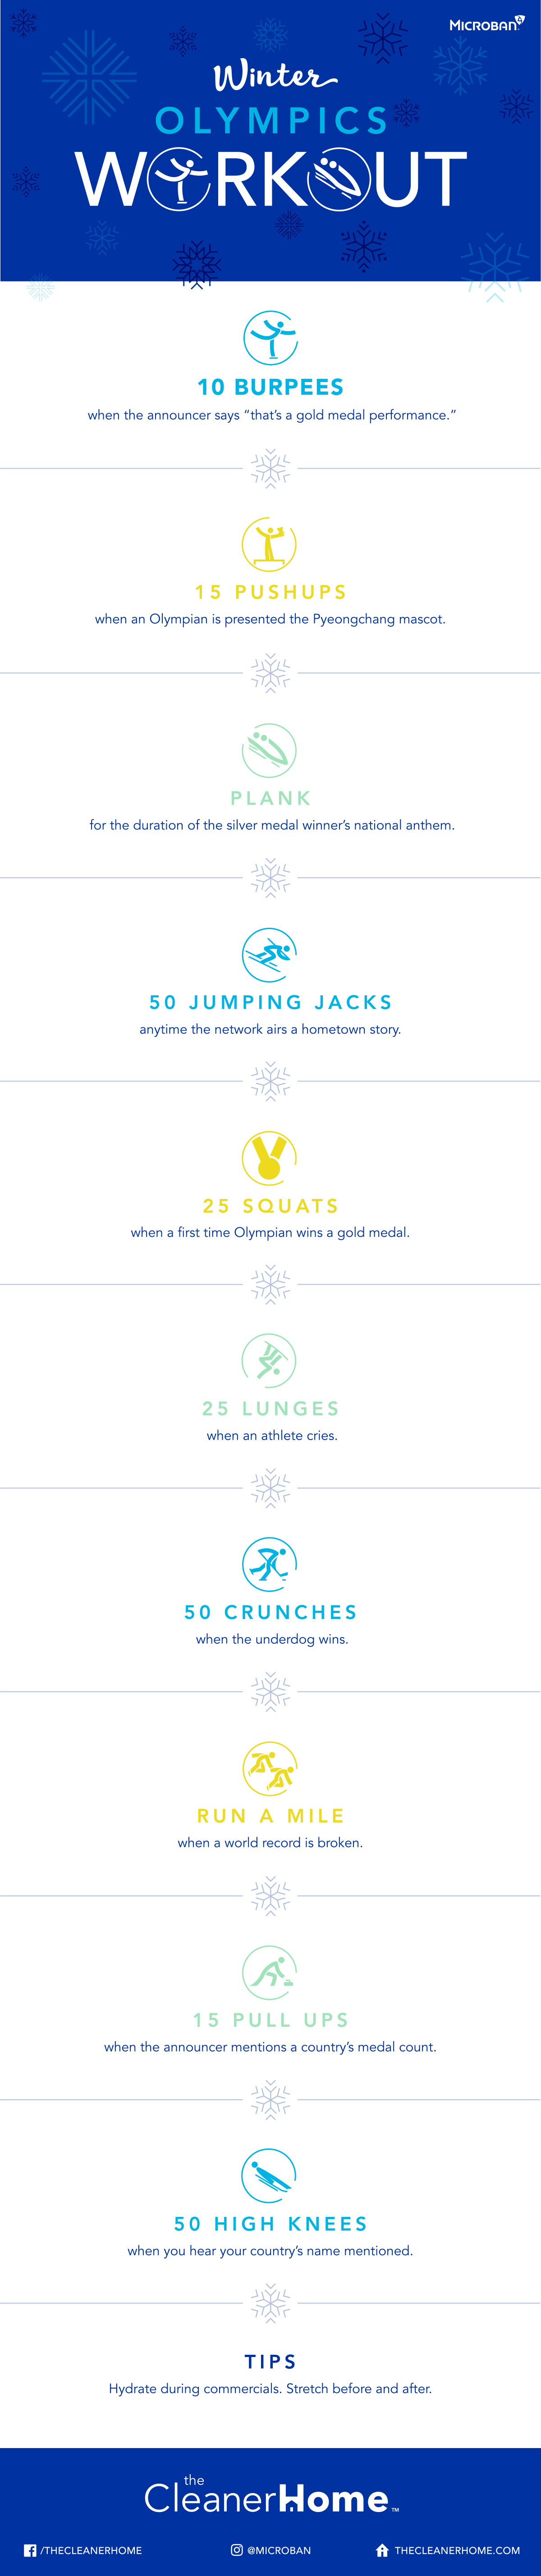 Winter Olympics Workout Challenge Infographic